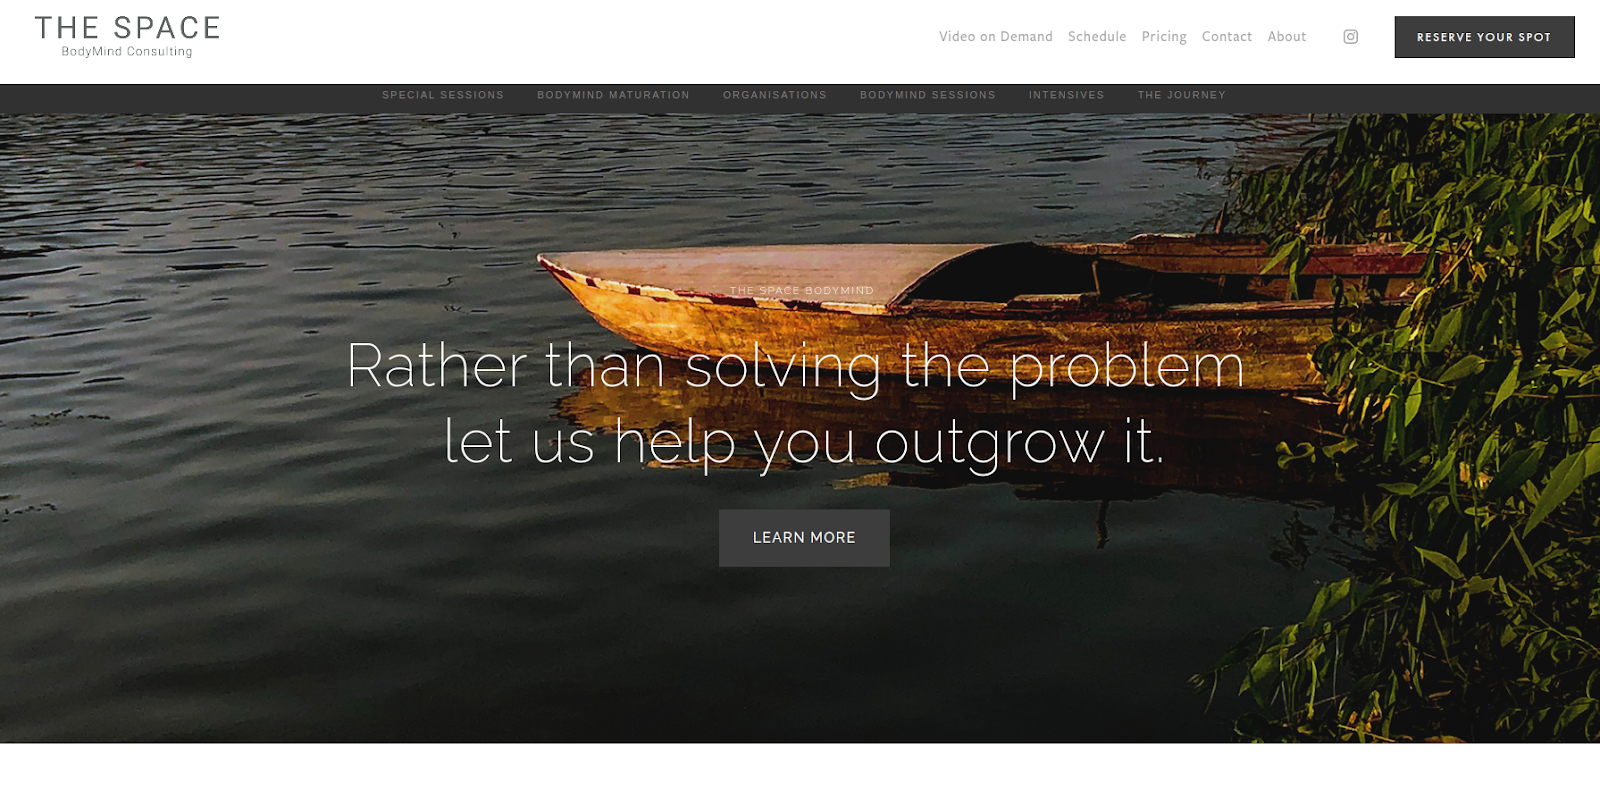 Space Bodymind Consulting's home page with a clean and peaceful design